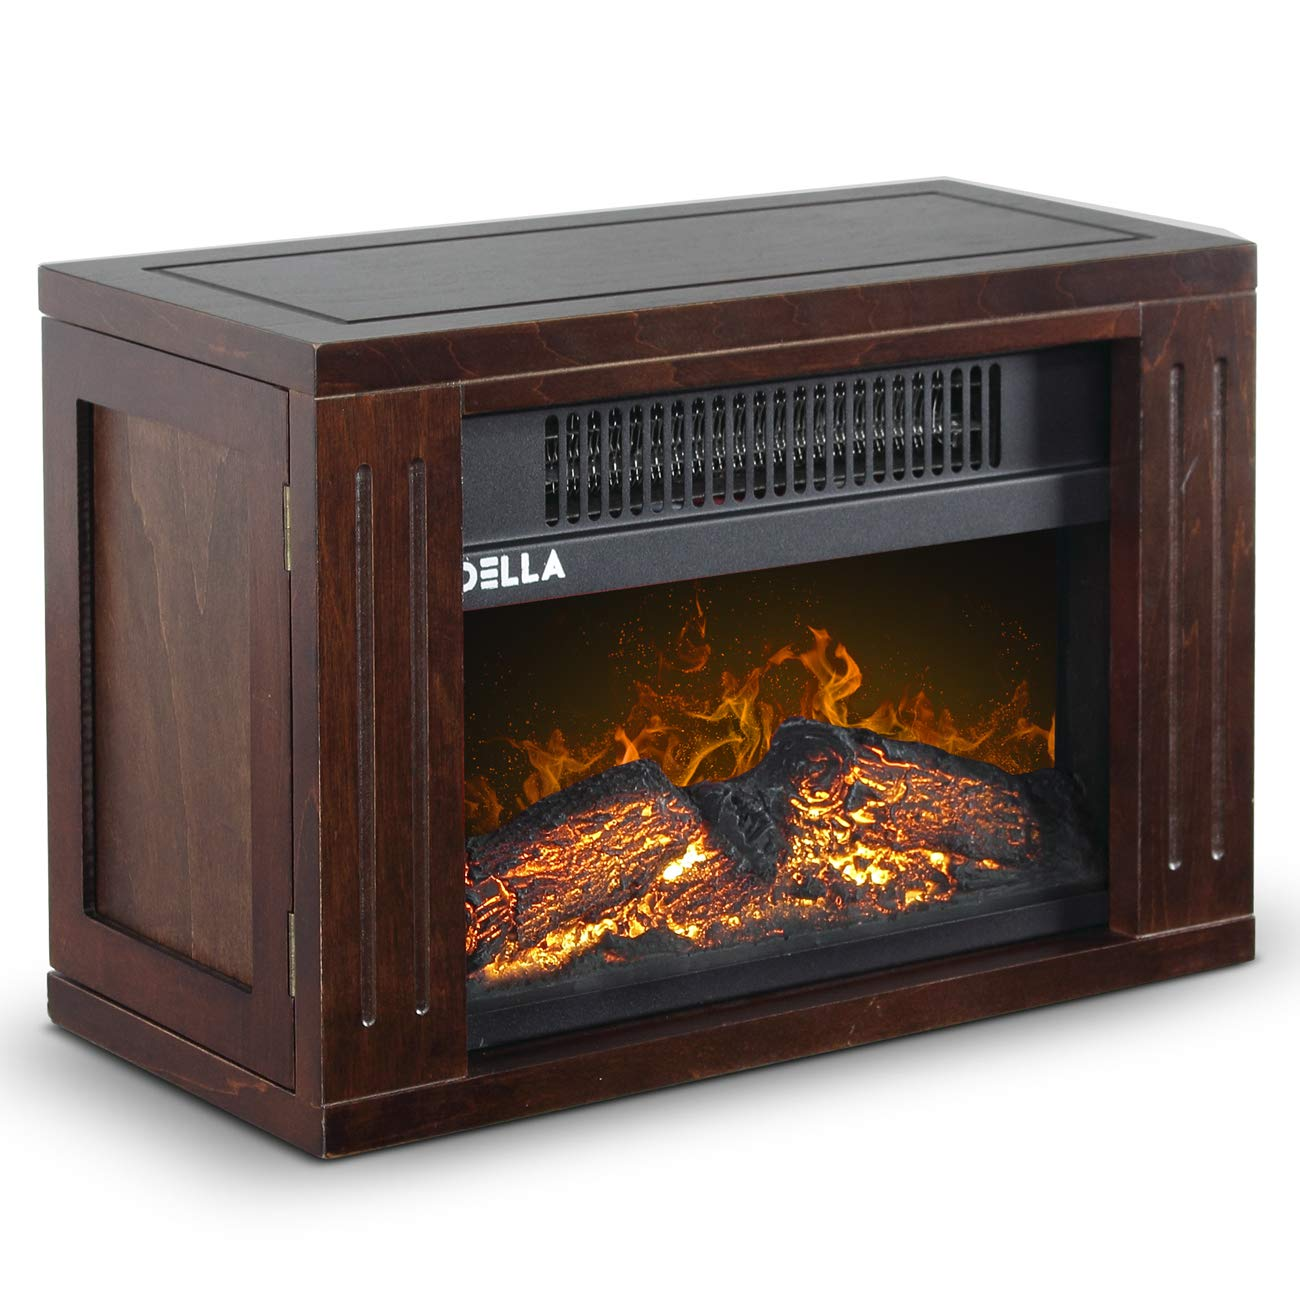 Amazon Com Della 1200 Watt Hearth Portable Electric Fireplace Log